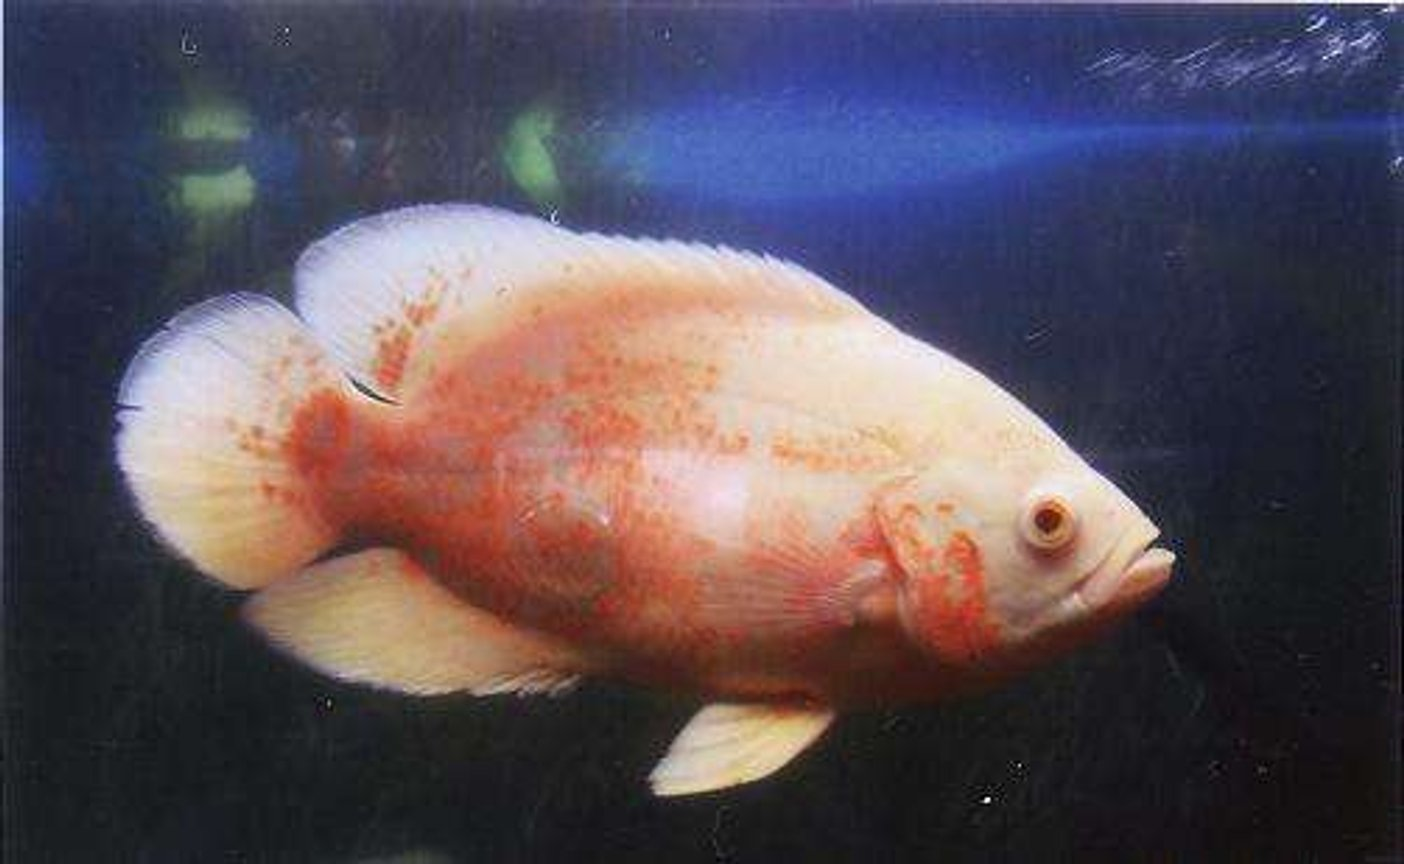 freshwater fish - astronotus ocellatus - albino oscar stocking in 55 gallons tank - Albino Oscar 2yrs old, very placid for an oscar which is weird as her tank mate (a tiger oscar) was very aggresive towords the sliver dollars in there with them